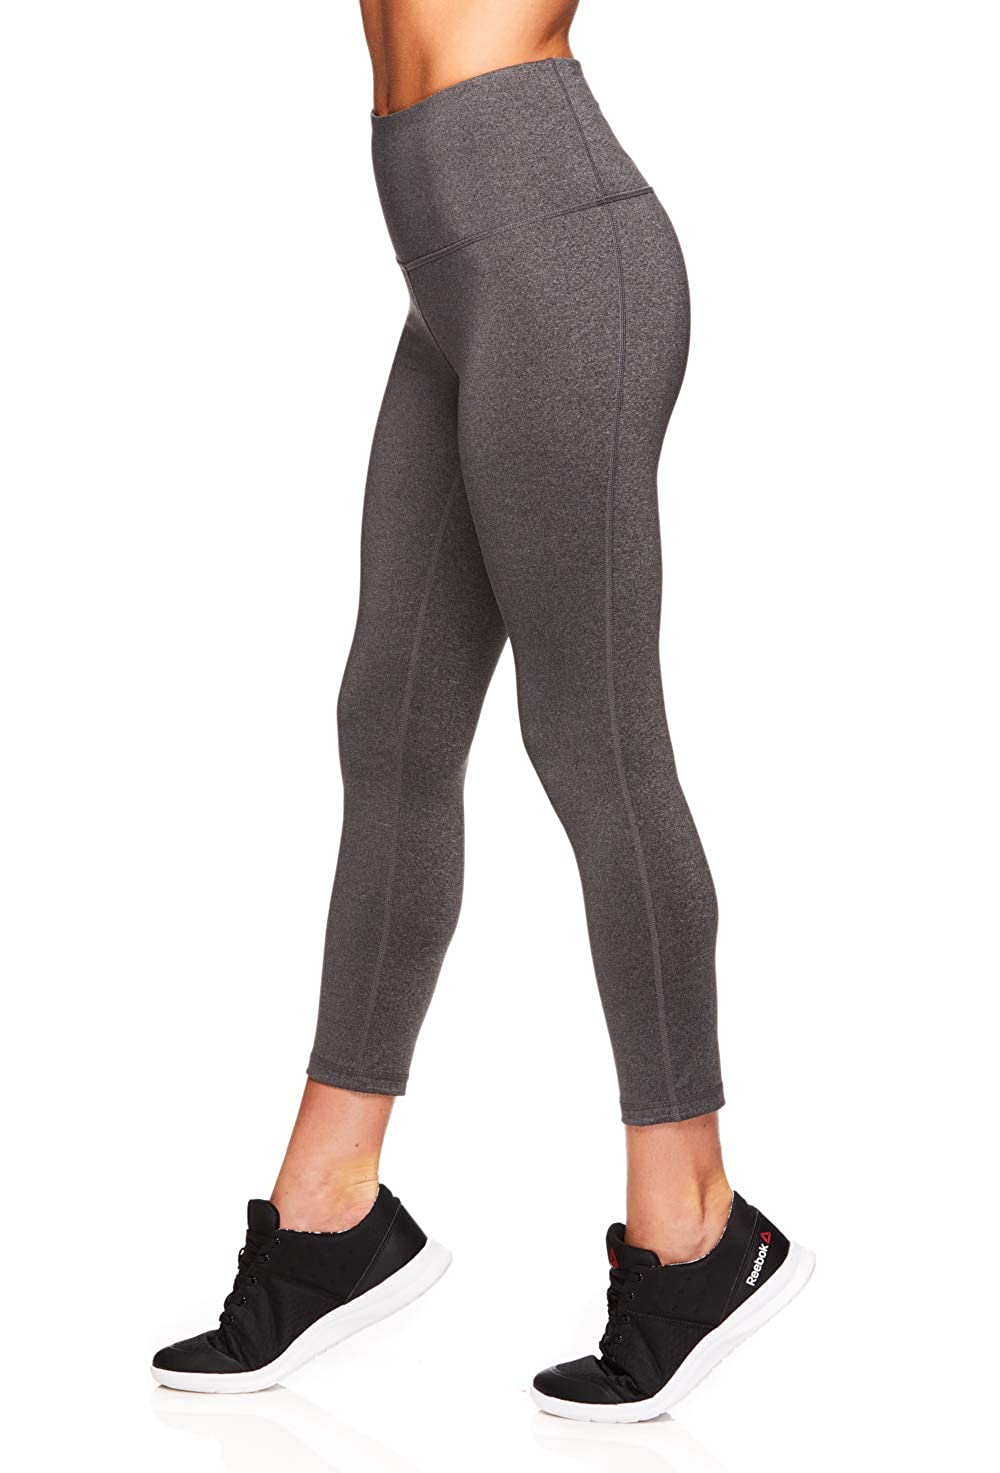 0c5716522ea07 Reebok Women's Capri Workout Leggings w/High-Rise Waist - Cropped  Performance Compression Tights at Amazon Women's Clothing store: